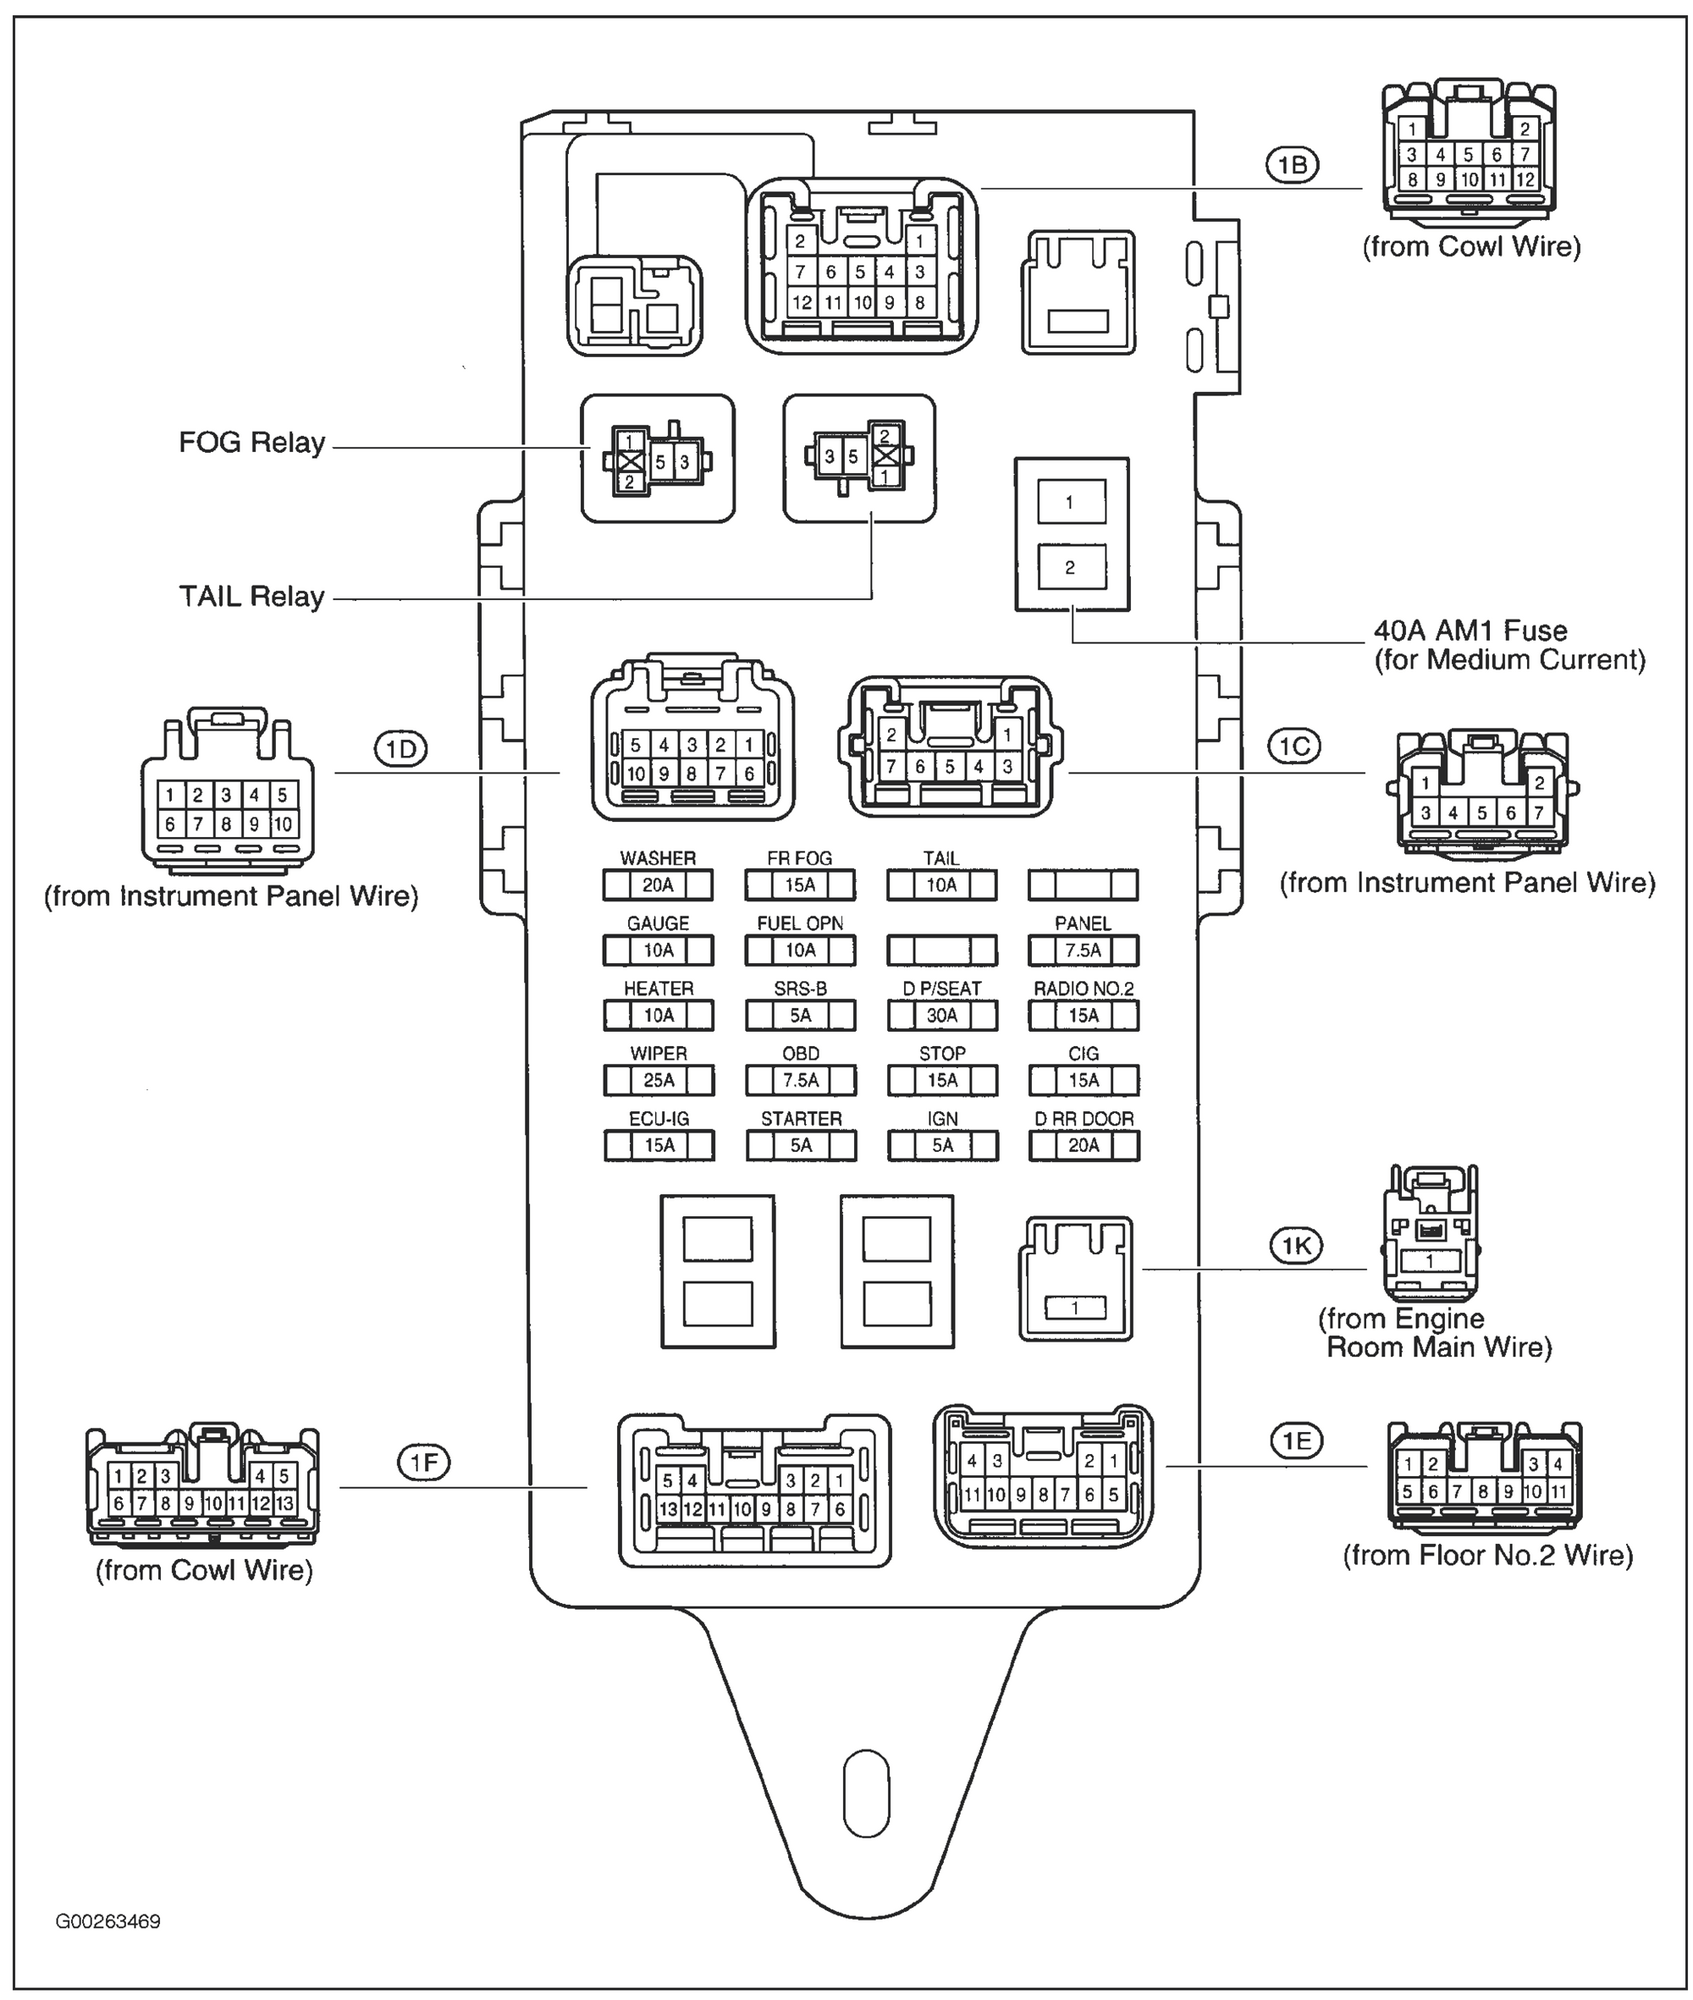 hight resolution of fuse box 2000 lexus gs300 wiring diagram operations 2000 lexus gs300 tail light fuse location 2000 lexus gs300 fuse diagram